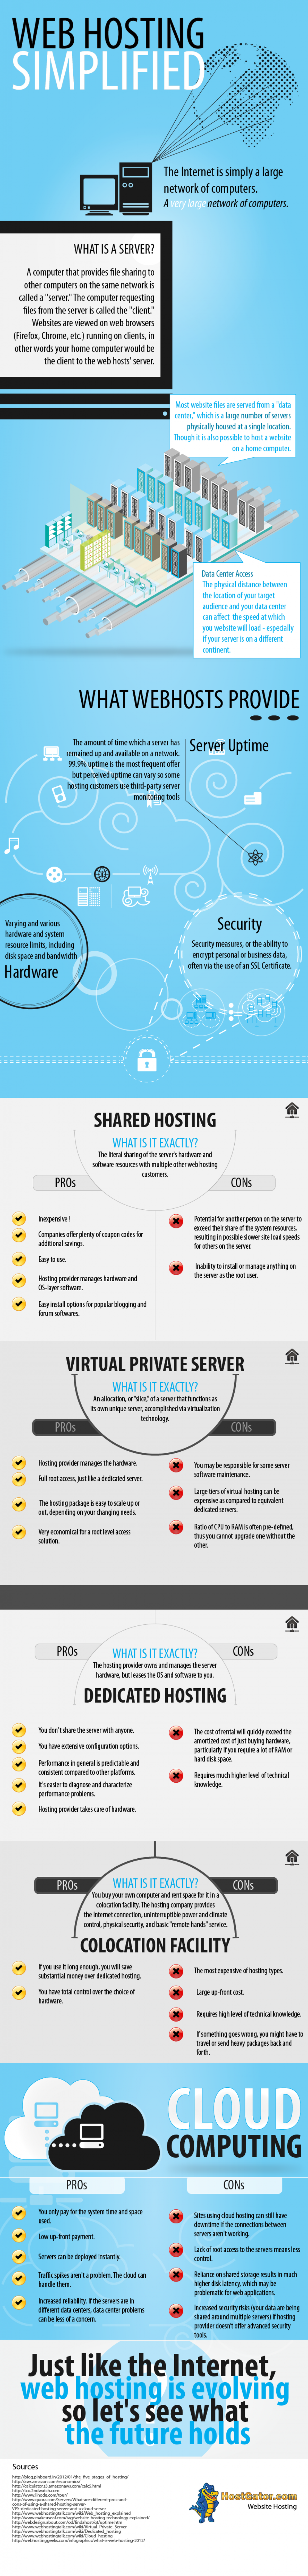 Webhosting Simplified Infographic